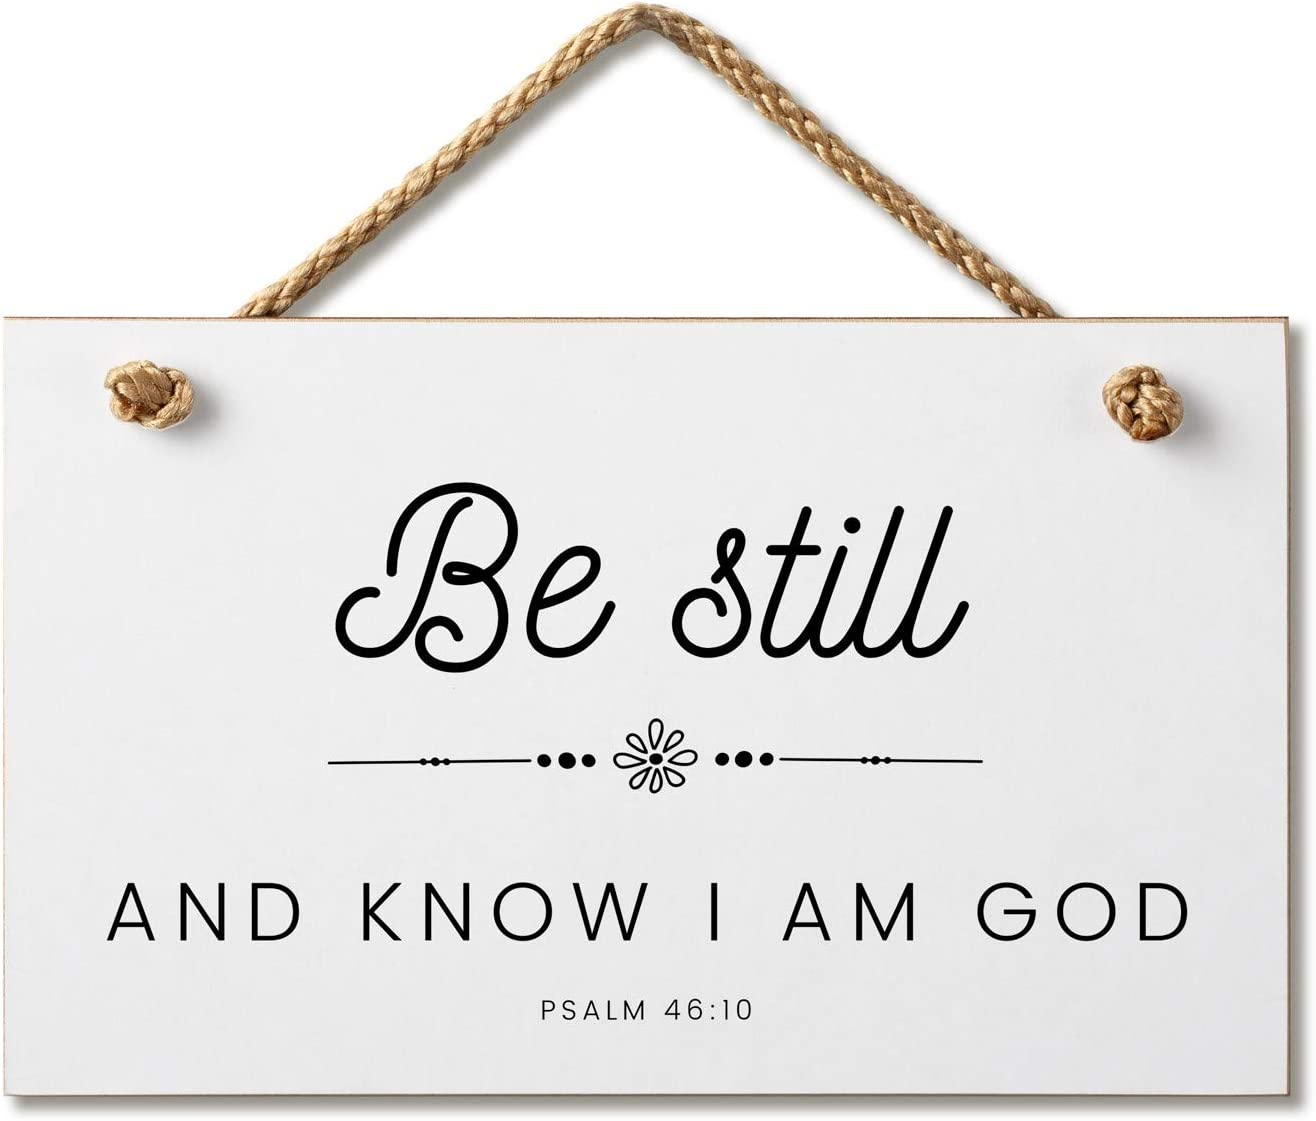 Marvin Gardens Designs Farmhouse Style Bible Verse Wall Decor Wood Sign 9.5 x 5.5 Inch Wood Made in The USA (Be Still (White), 9.5 x 5.5)